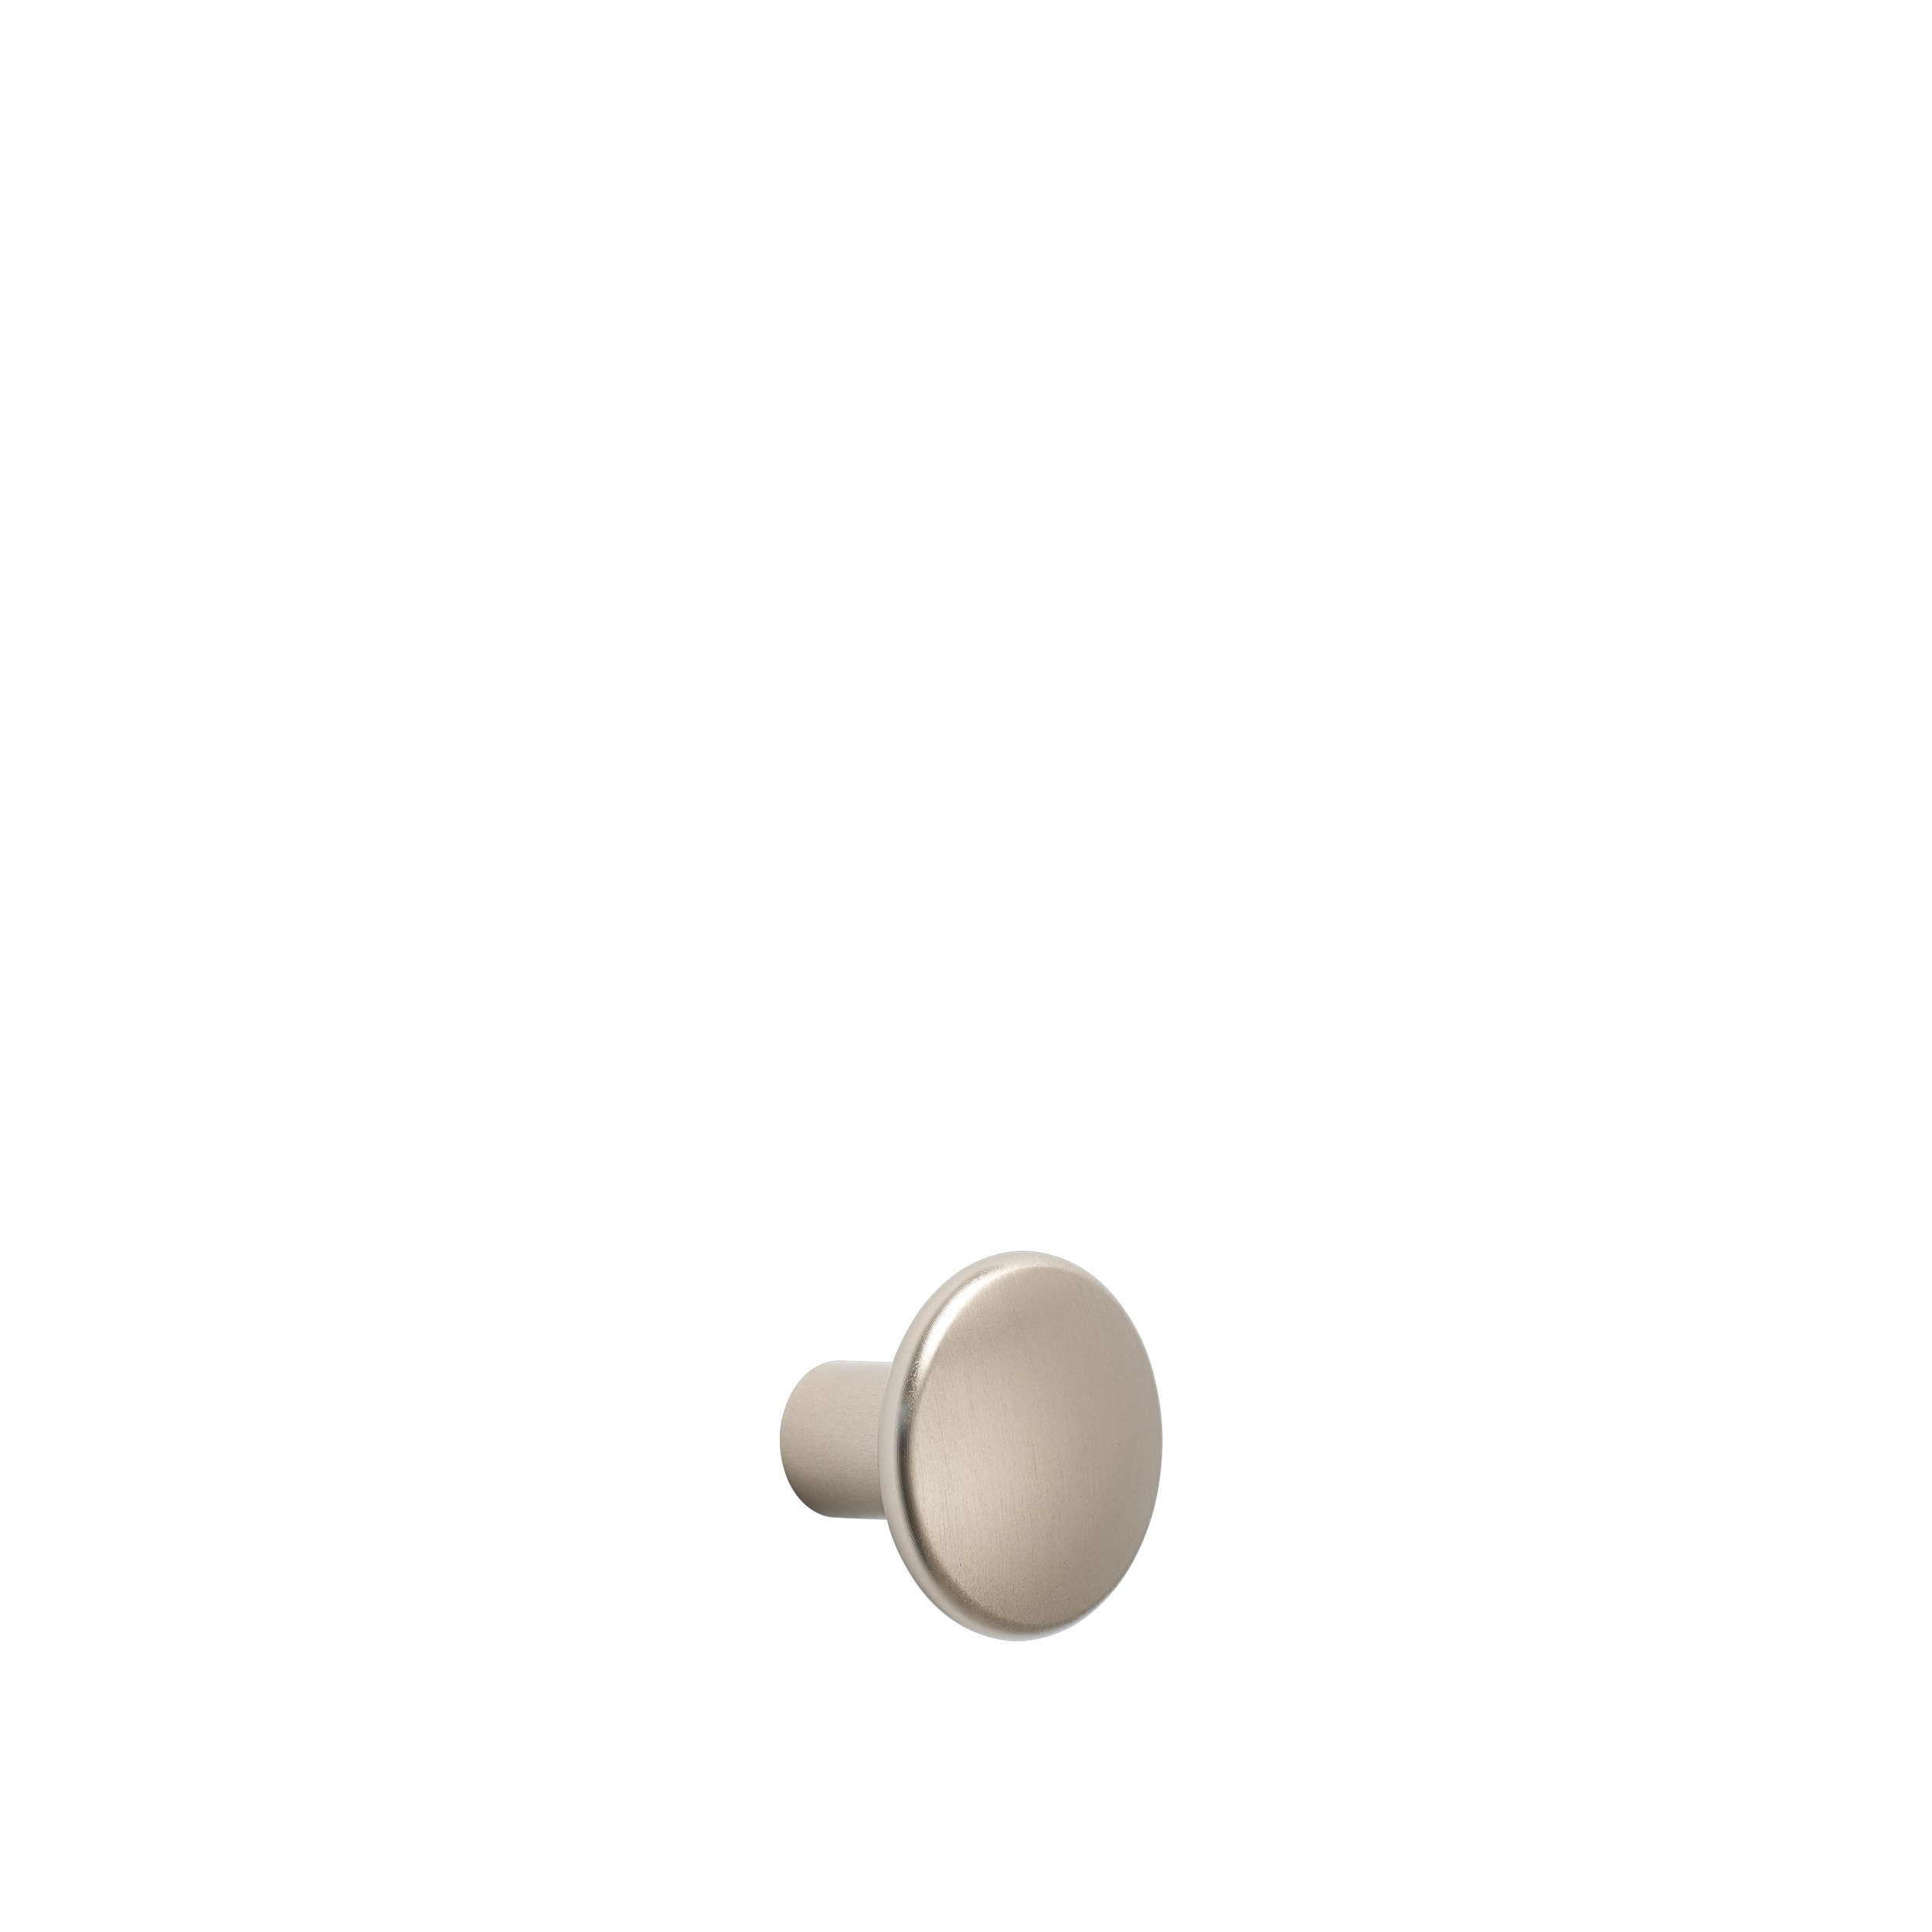 Dots metal small Ø 2,7 cm taupe